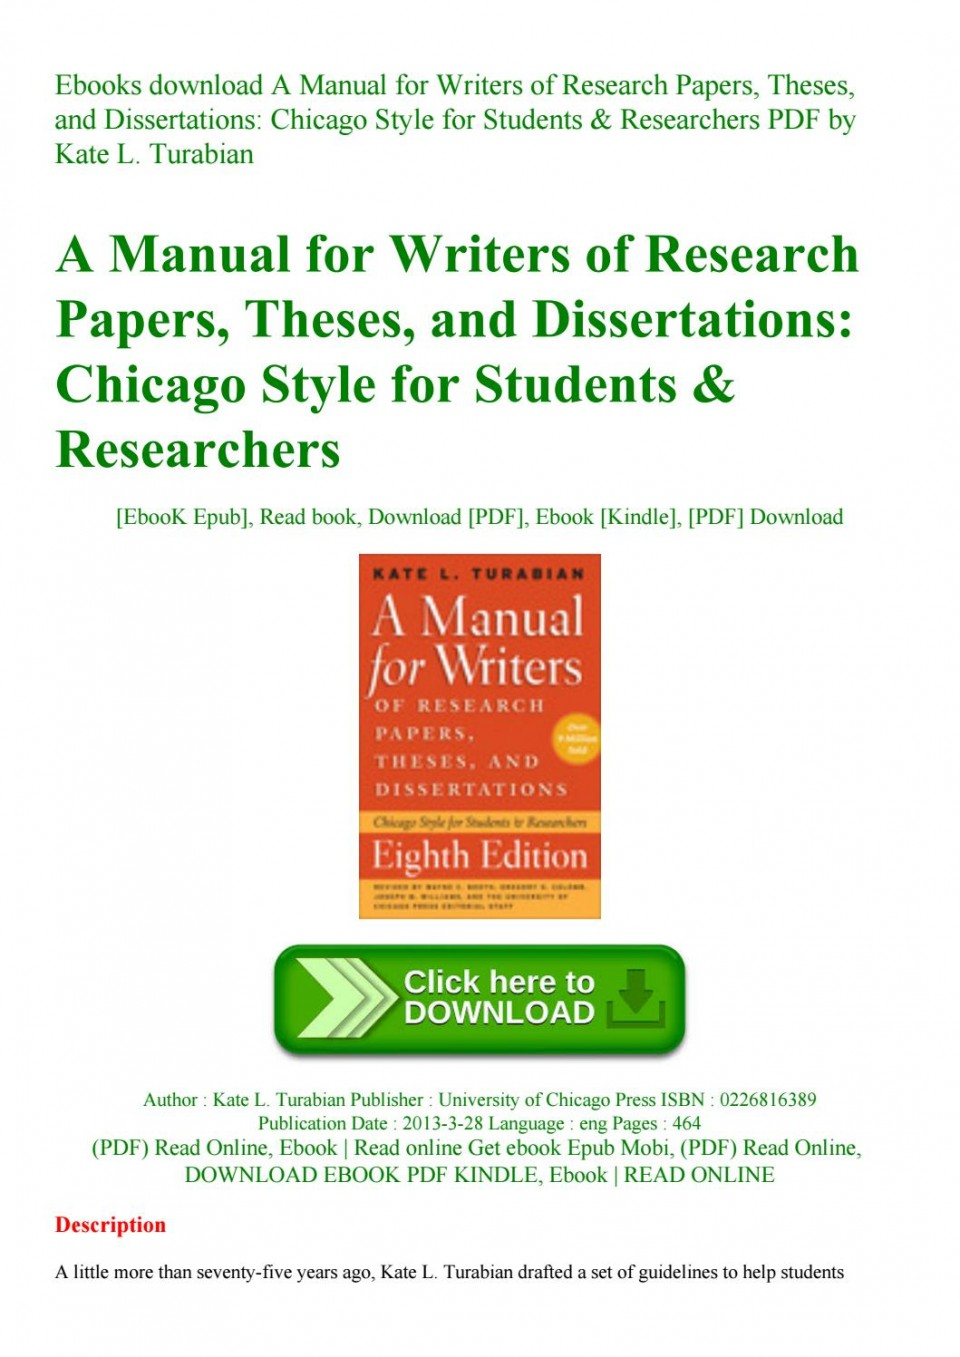 005 Page 1 Manual For Writers Of Researchs Theses And Dissertations Ebook Unbelievable A Research Papers 960